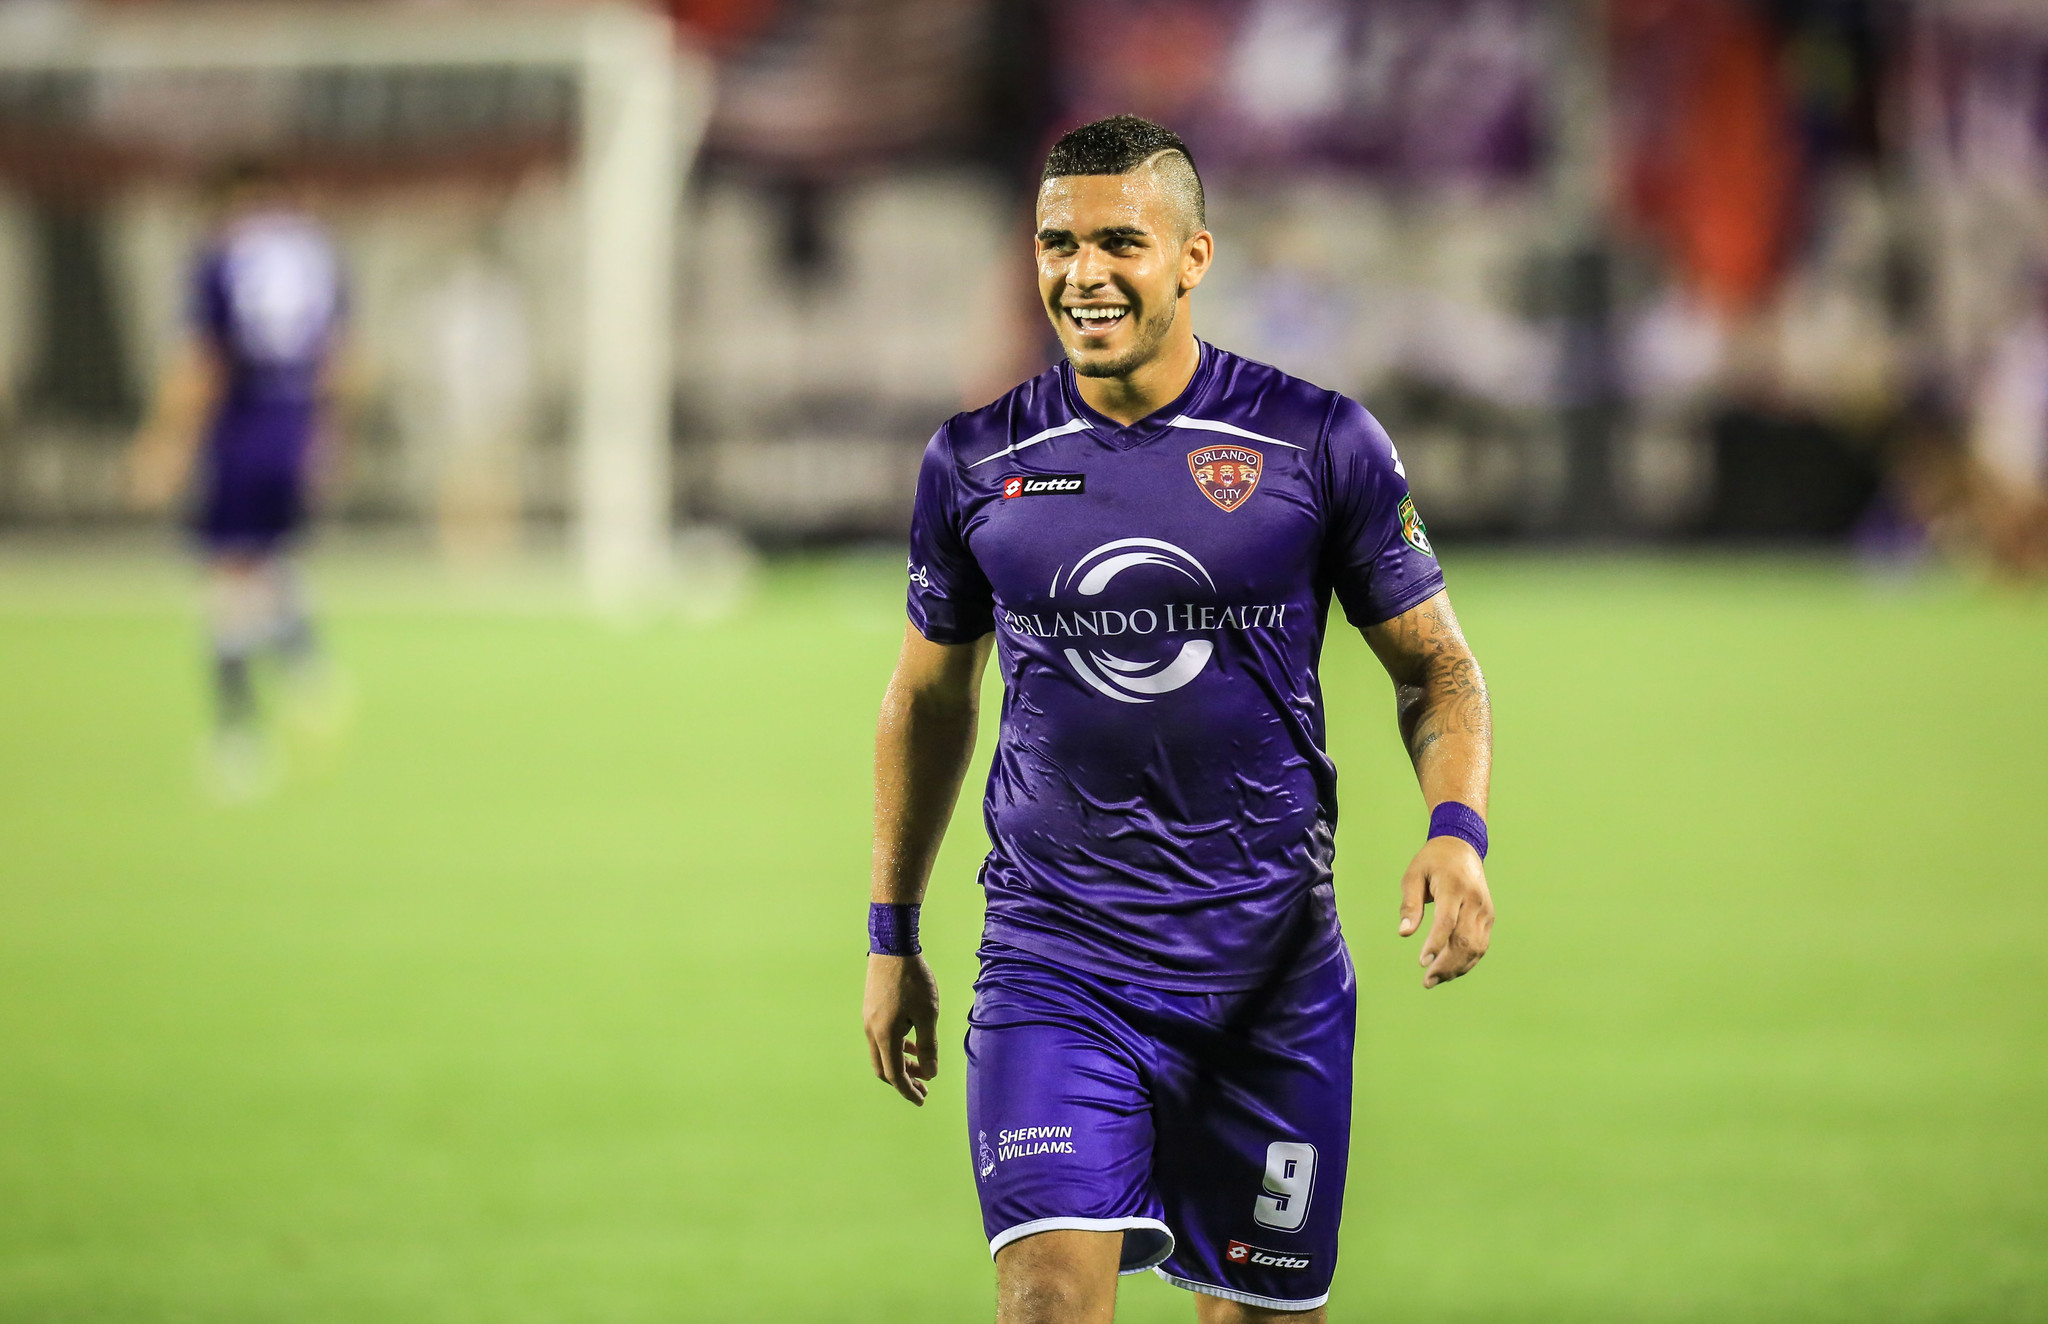 Orlando City reaches agreement to bring Dom Dwyer back